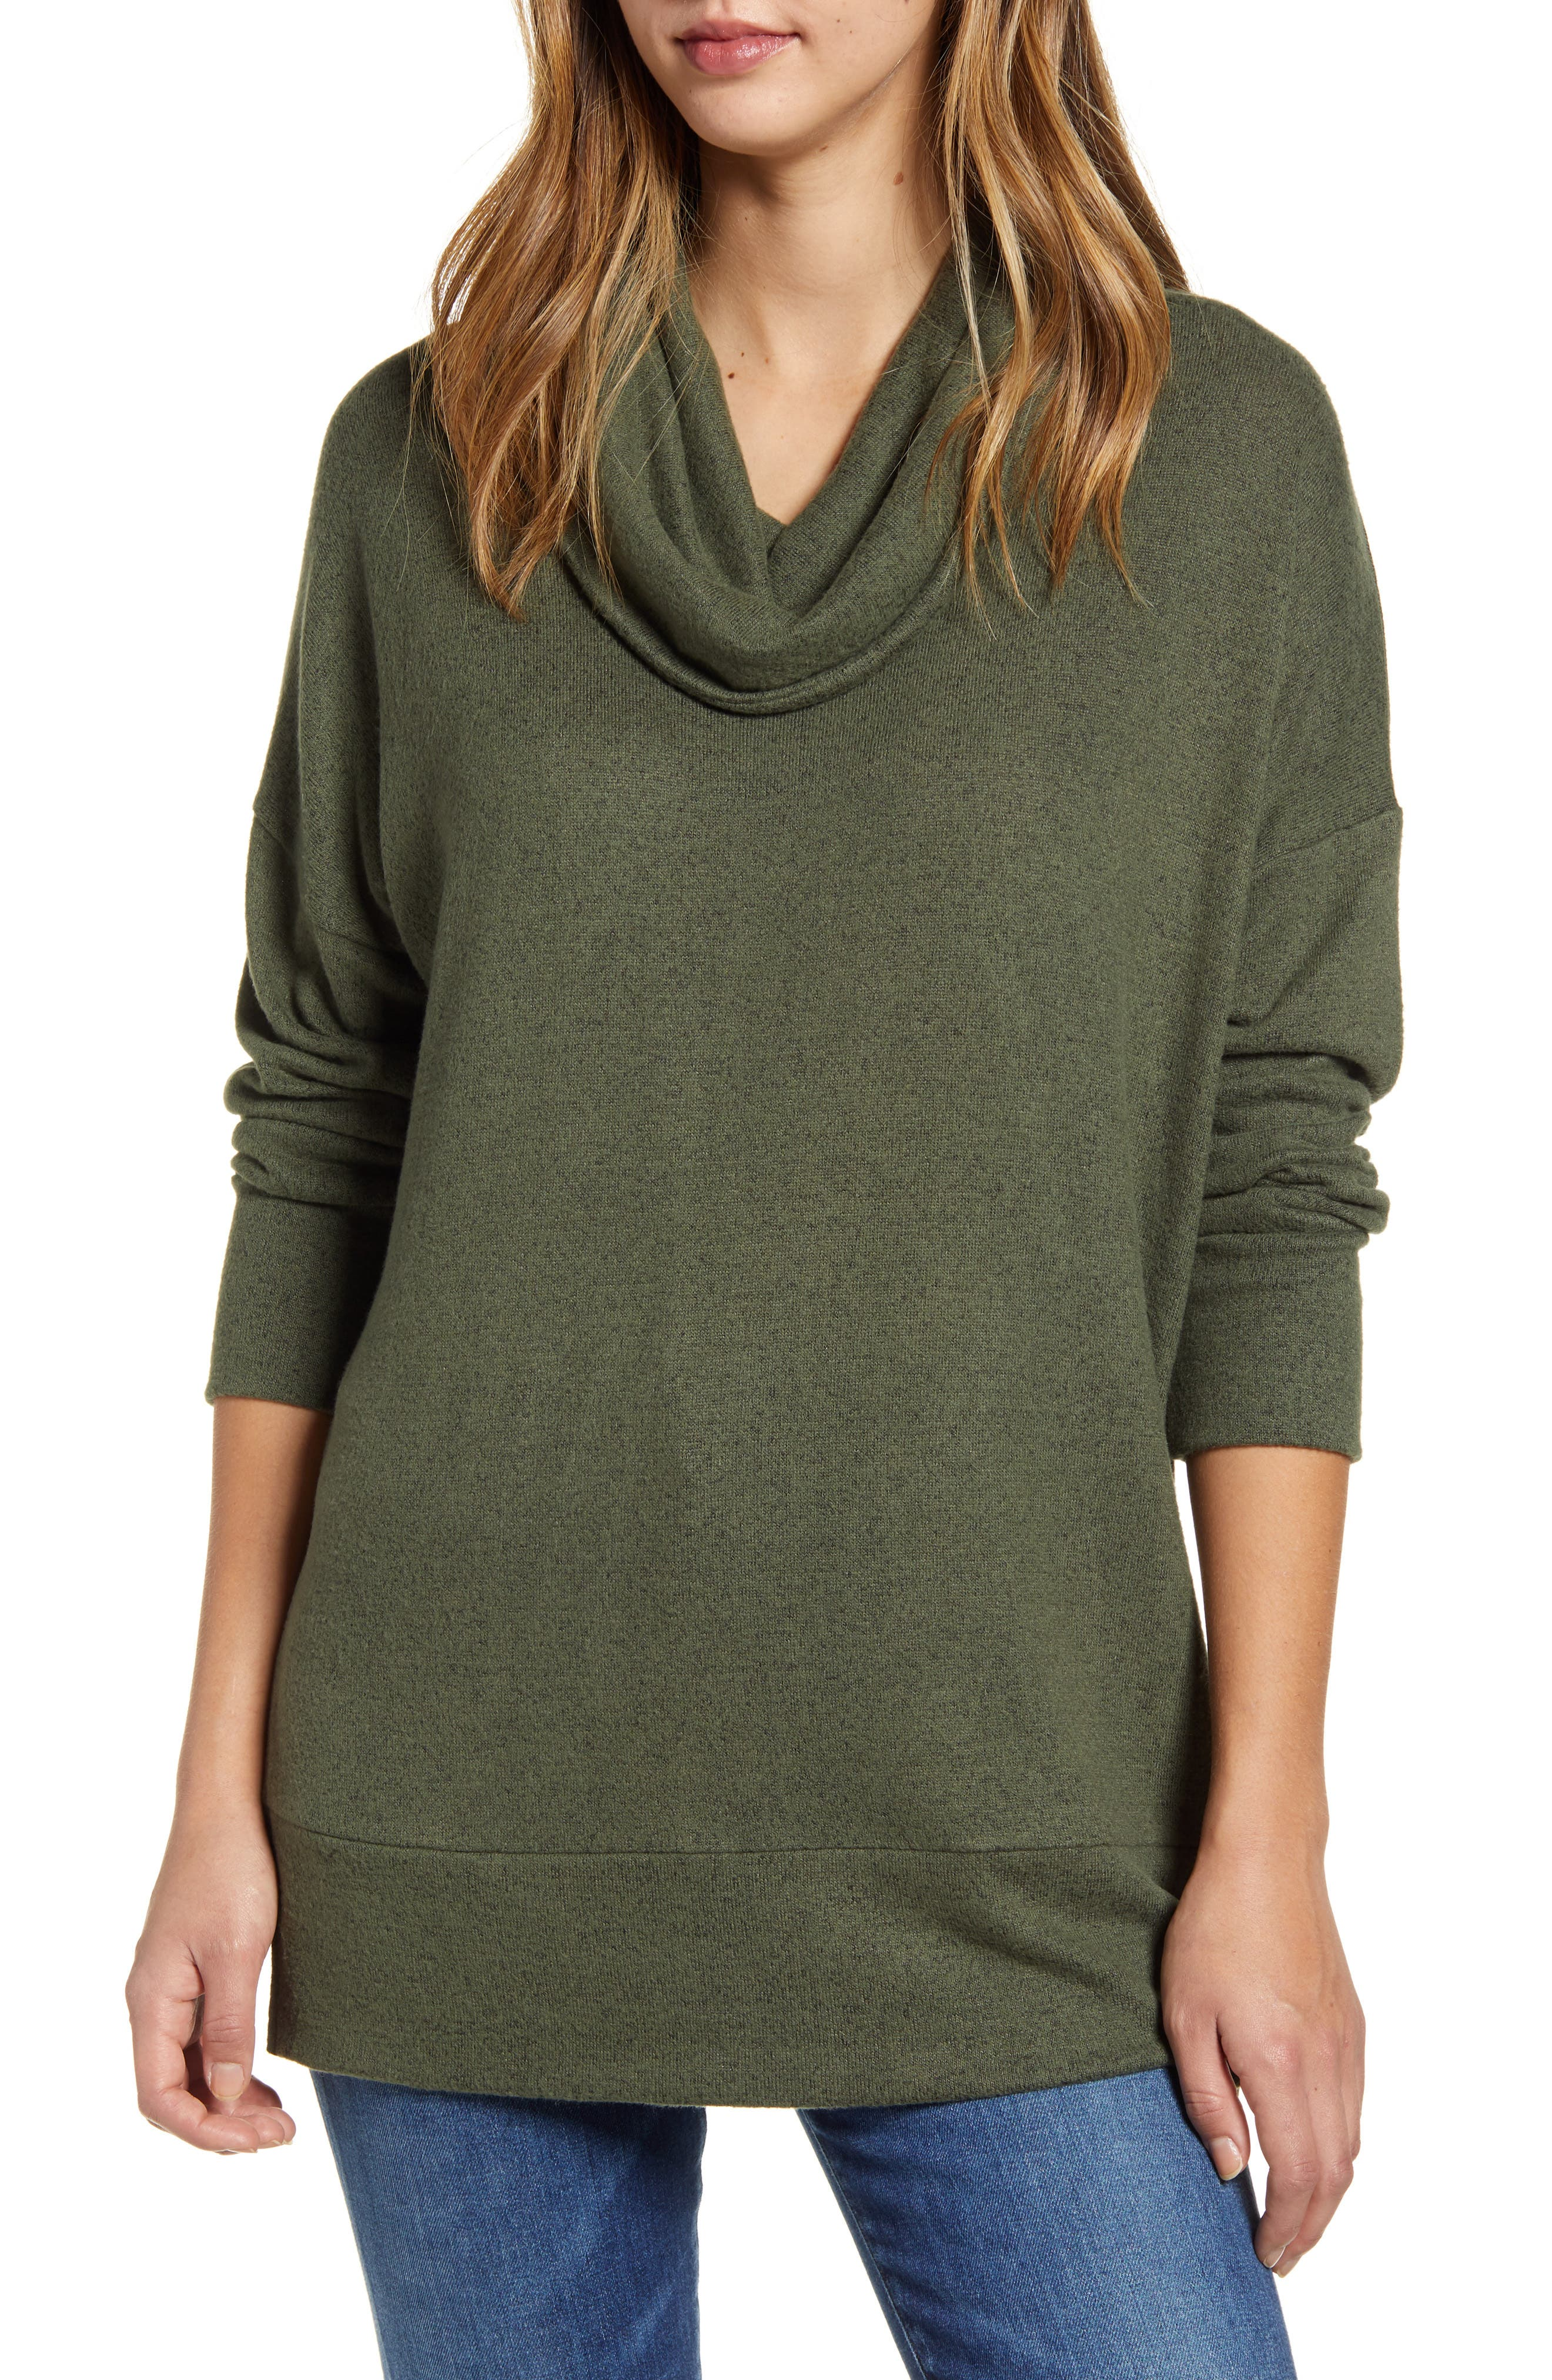 When your schedule calls for nothing but kicking back, do it wearing this cozy, brushed cowl-neck top, cut with side slits for easy movement. Style Name: Loveapella Cowl Neck Long Sleeve Top. Style Number: 5982227. Available in stores.